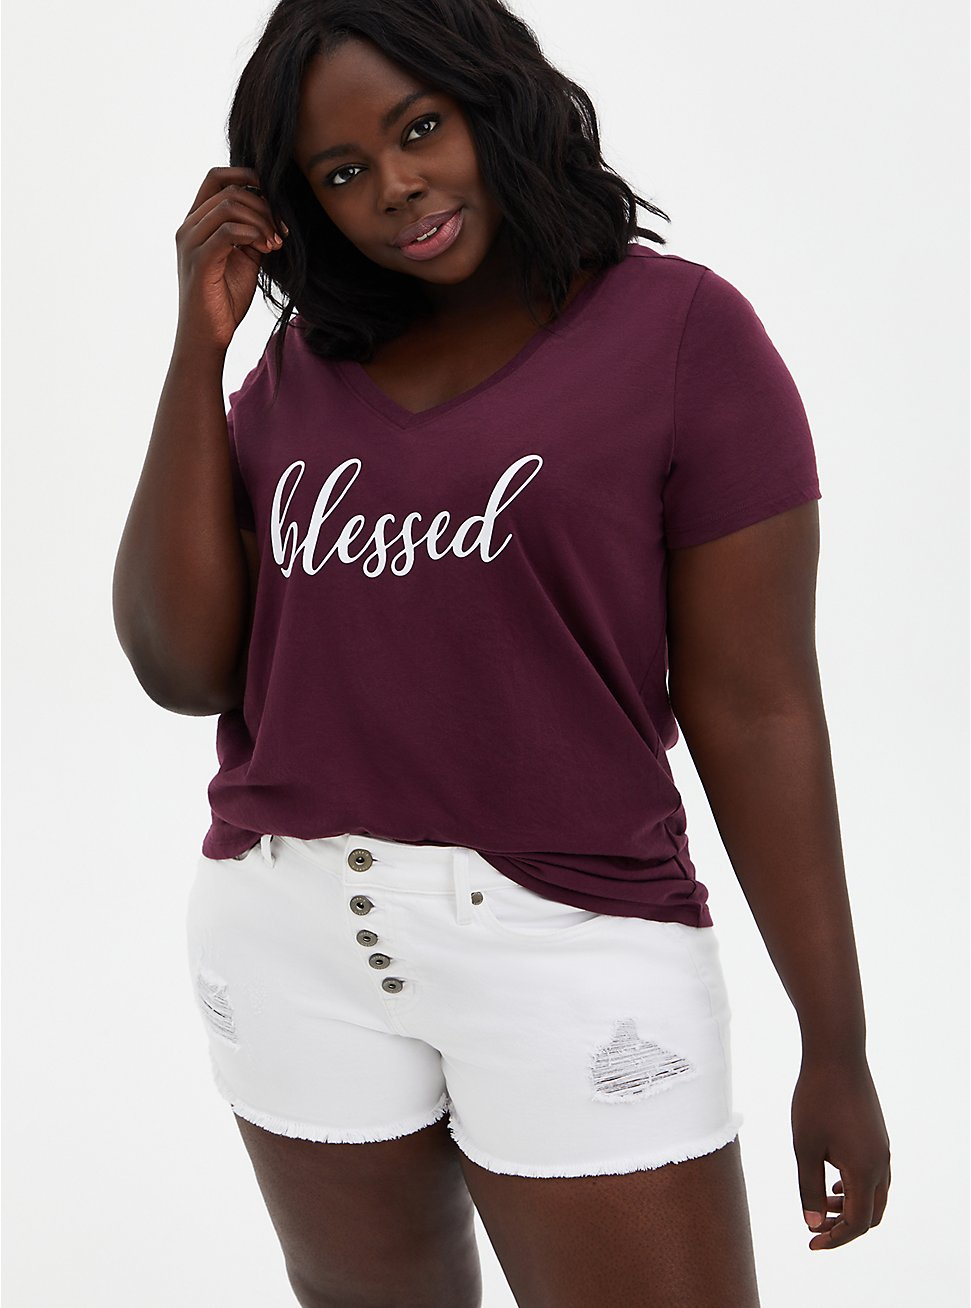 Classic Fit Tee - Blessed Burgundy Purple, , hi-res